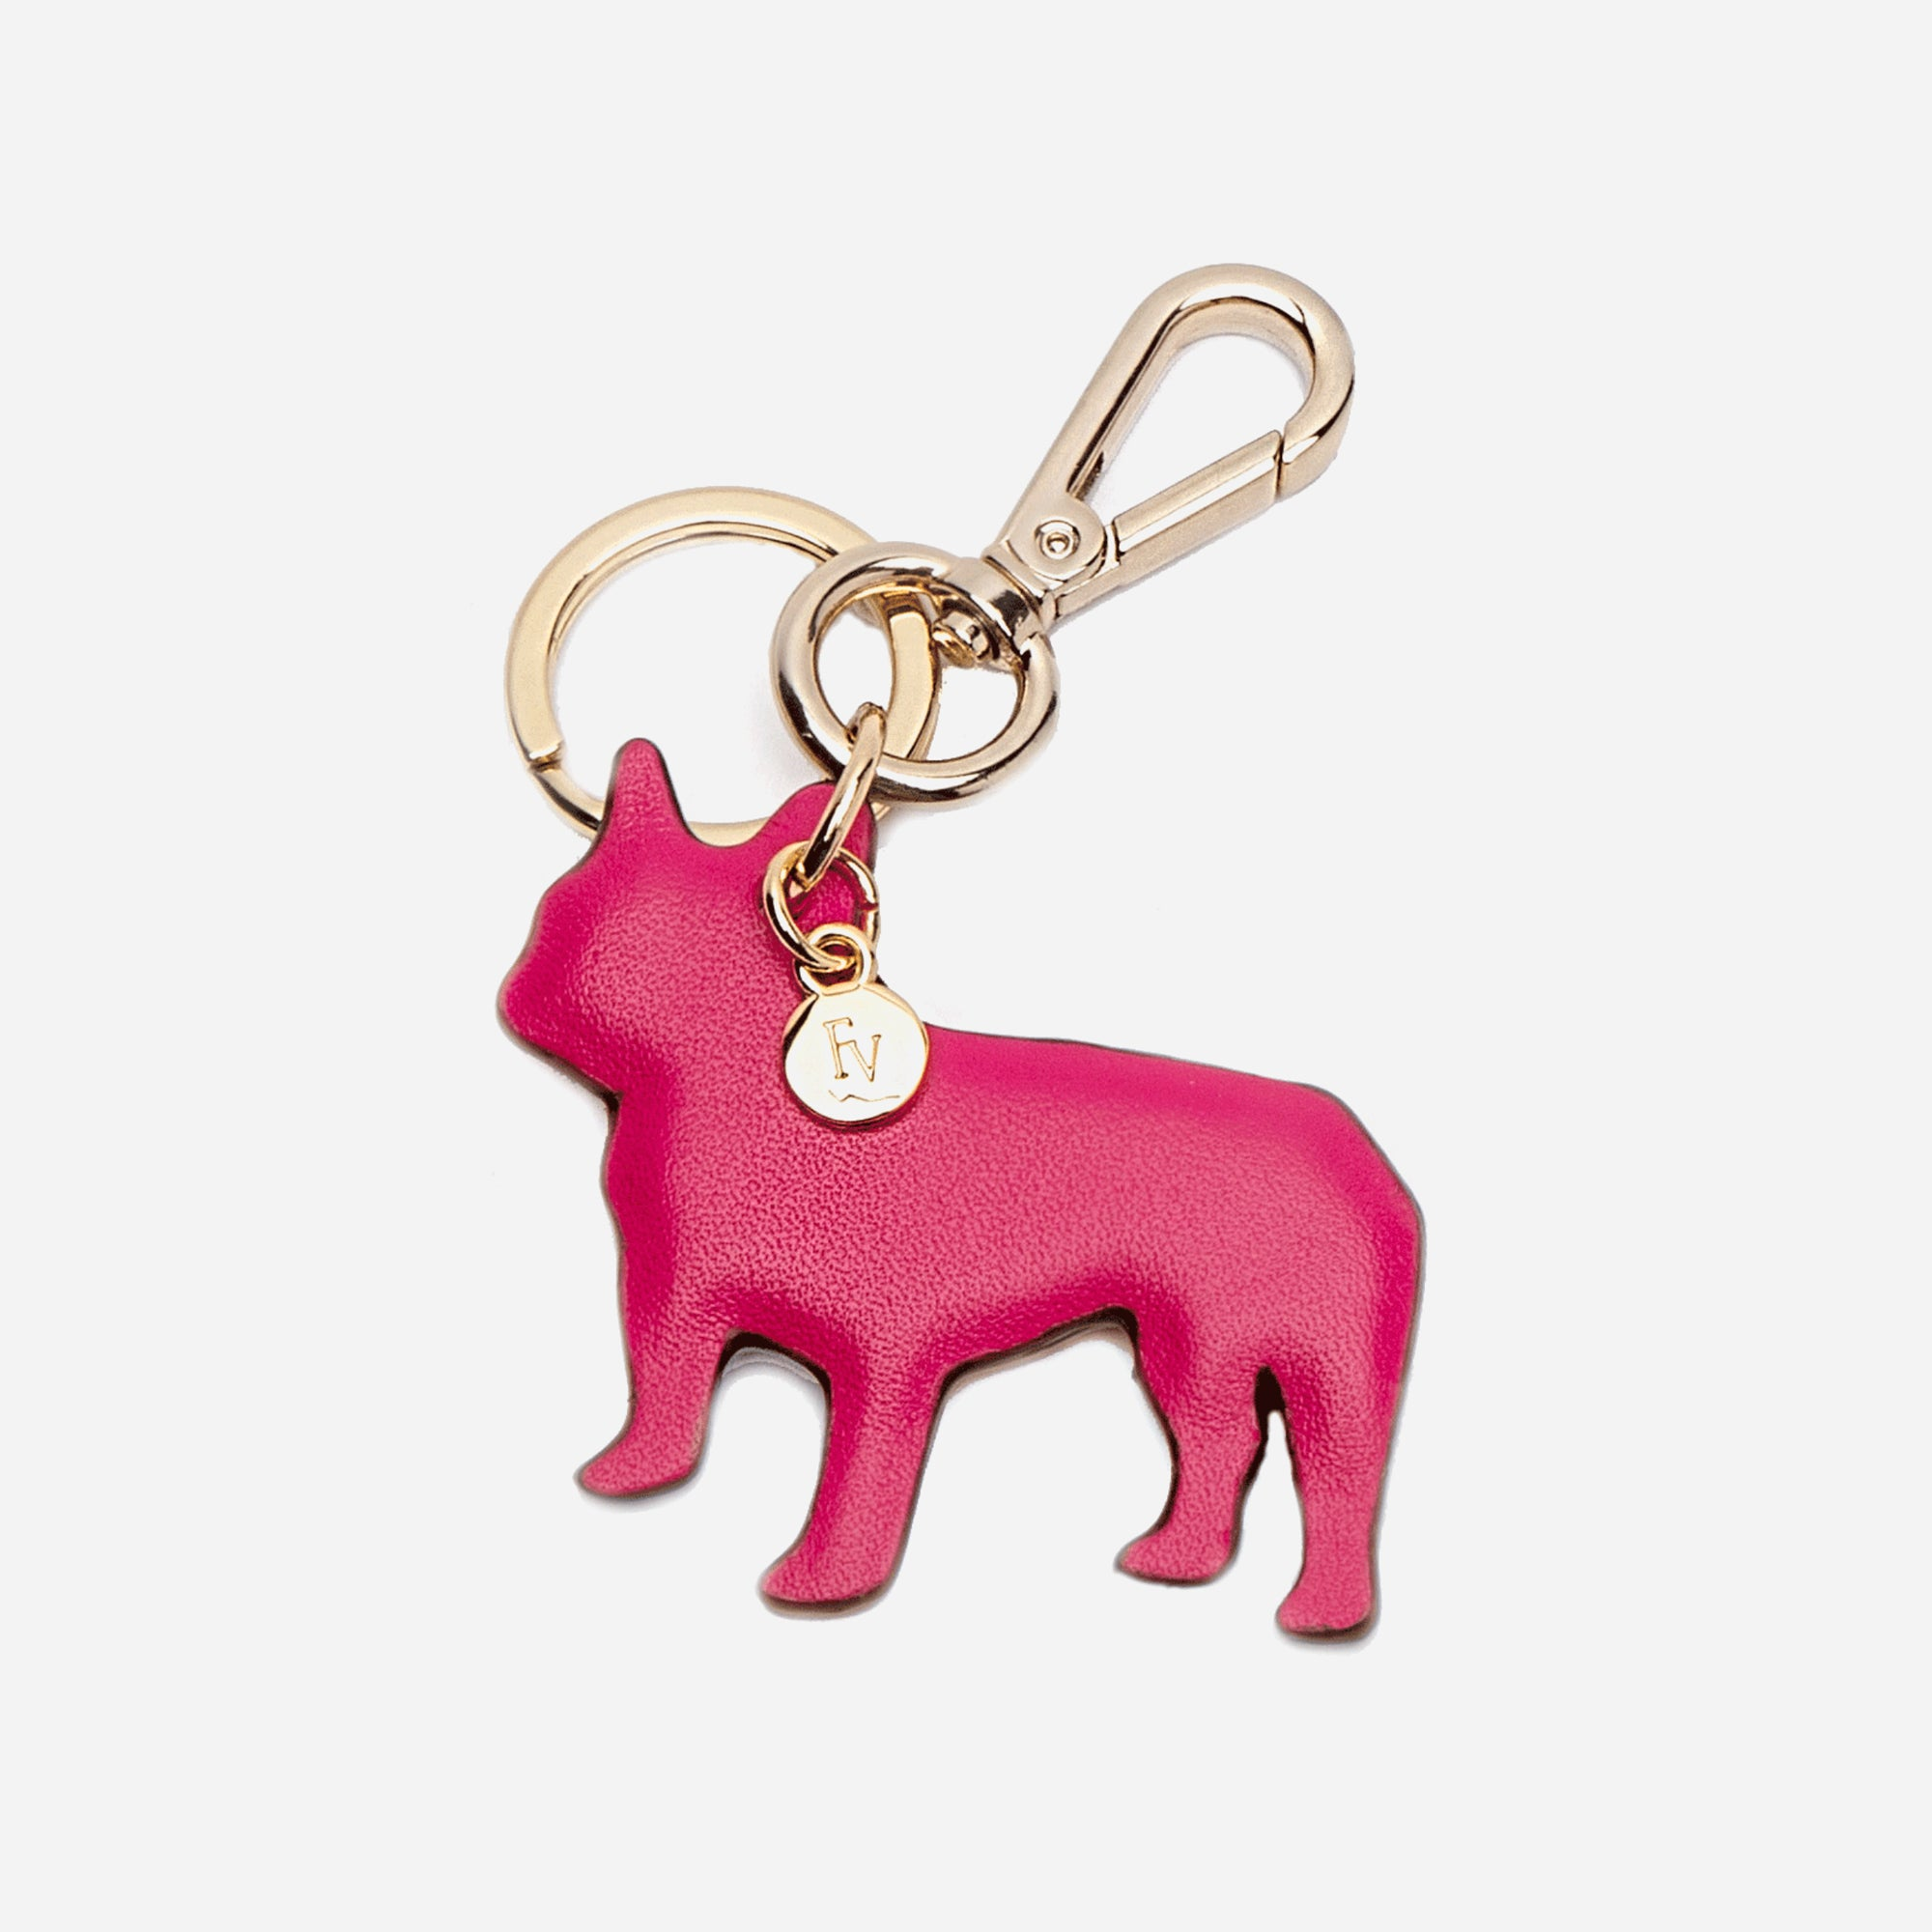 French Bulldog Keychain Pink